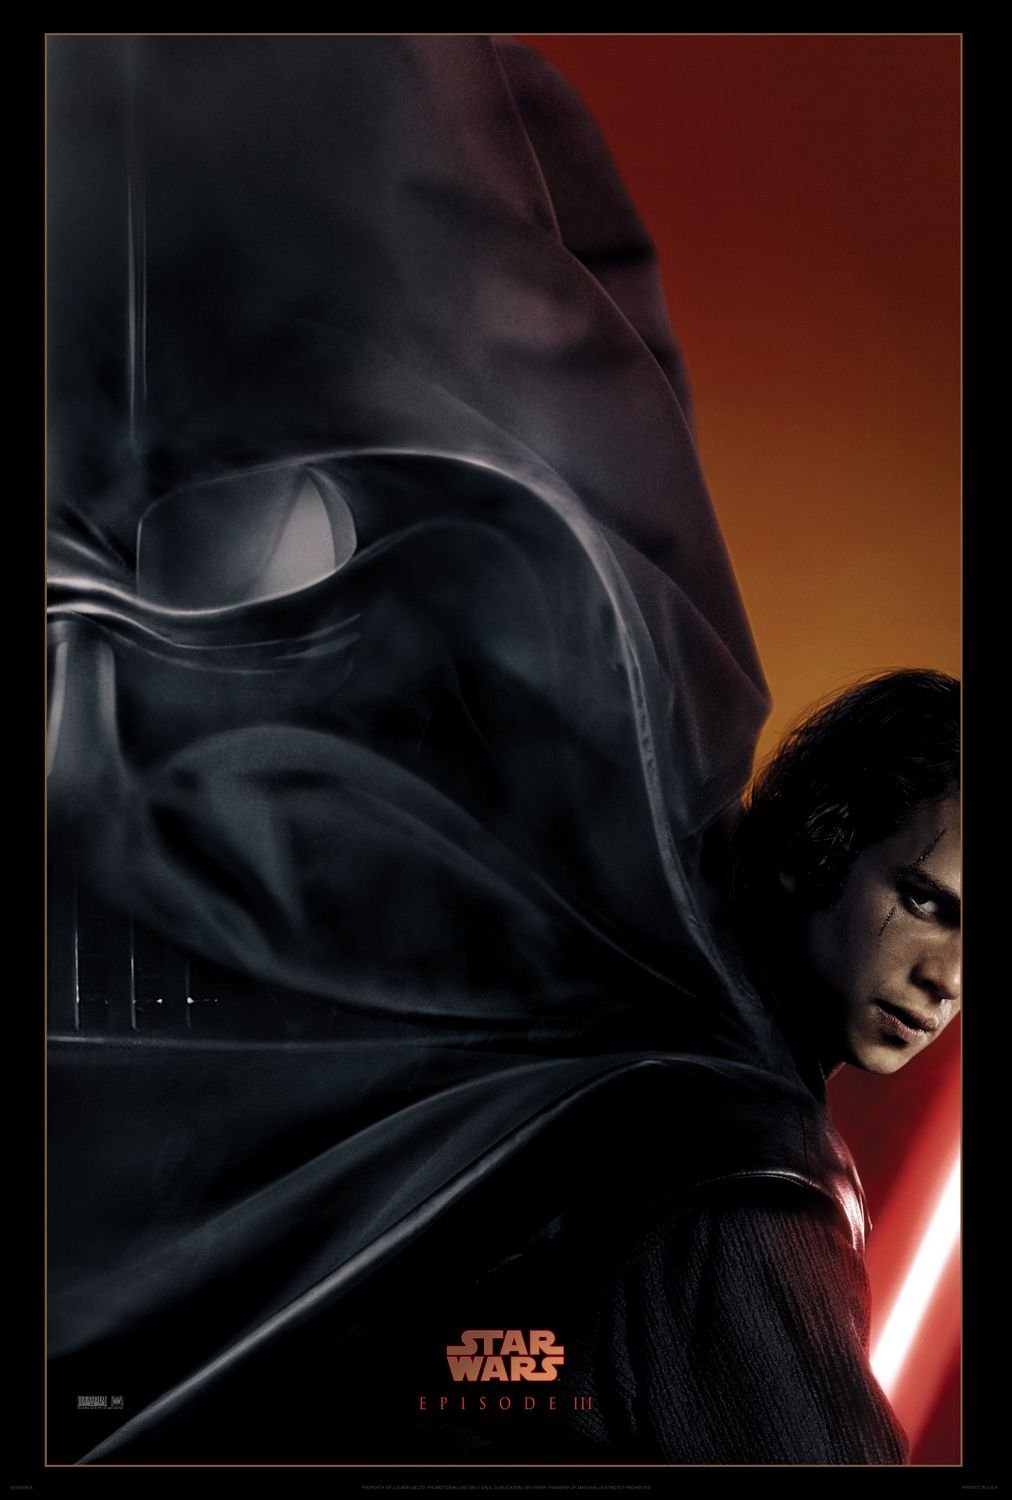 Star wars episode iii revenge of the sith 2005 poster